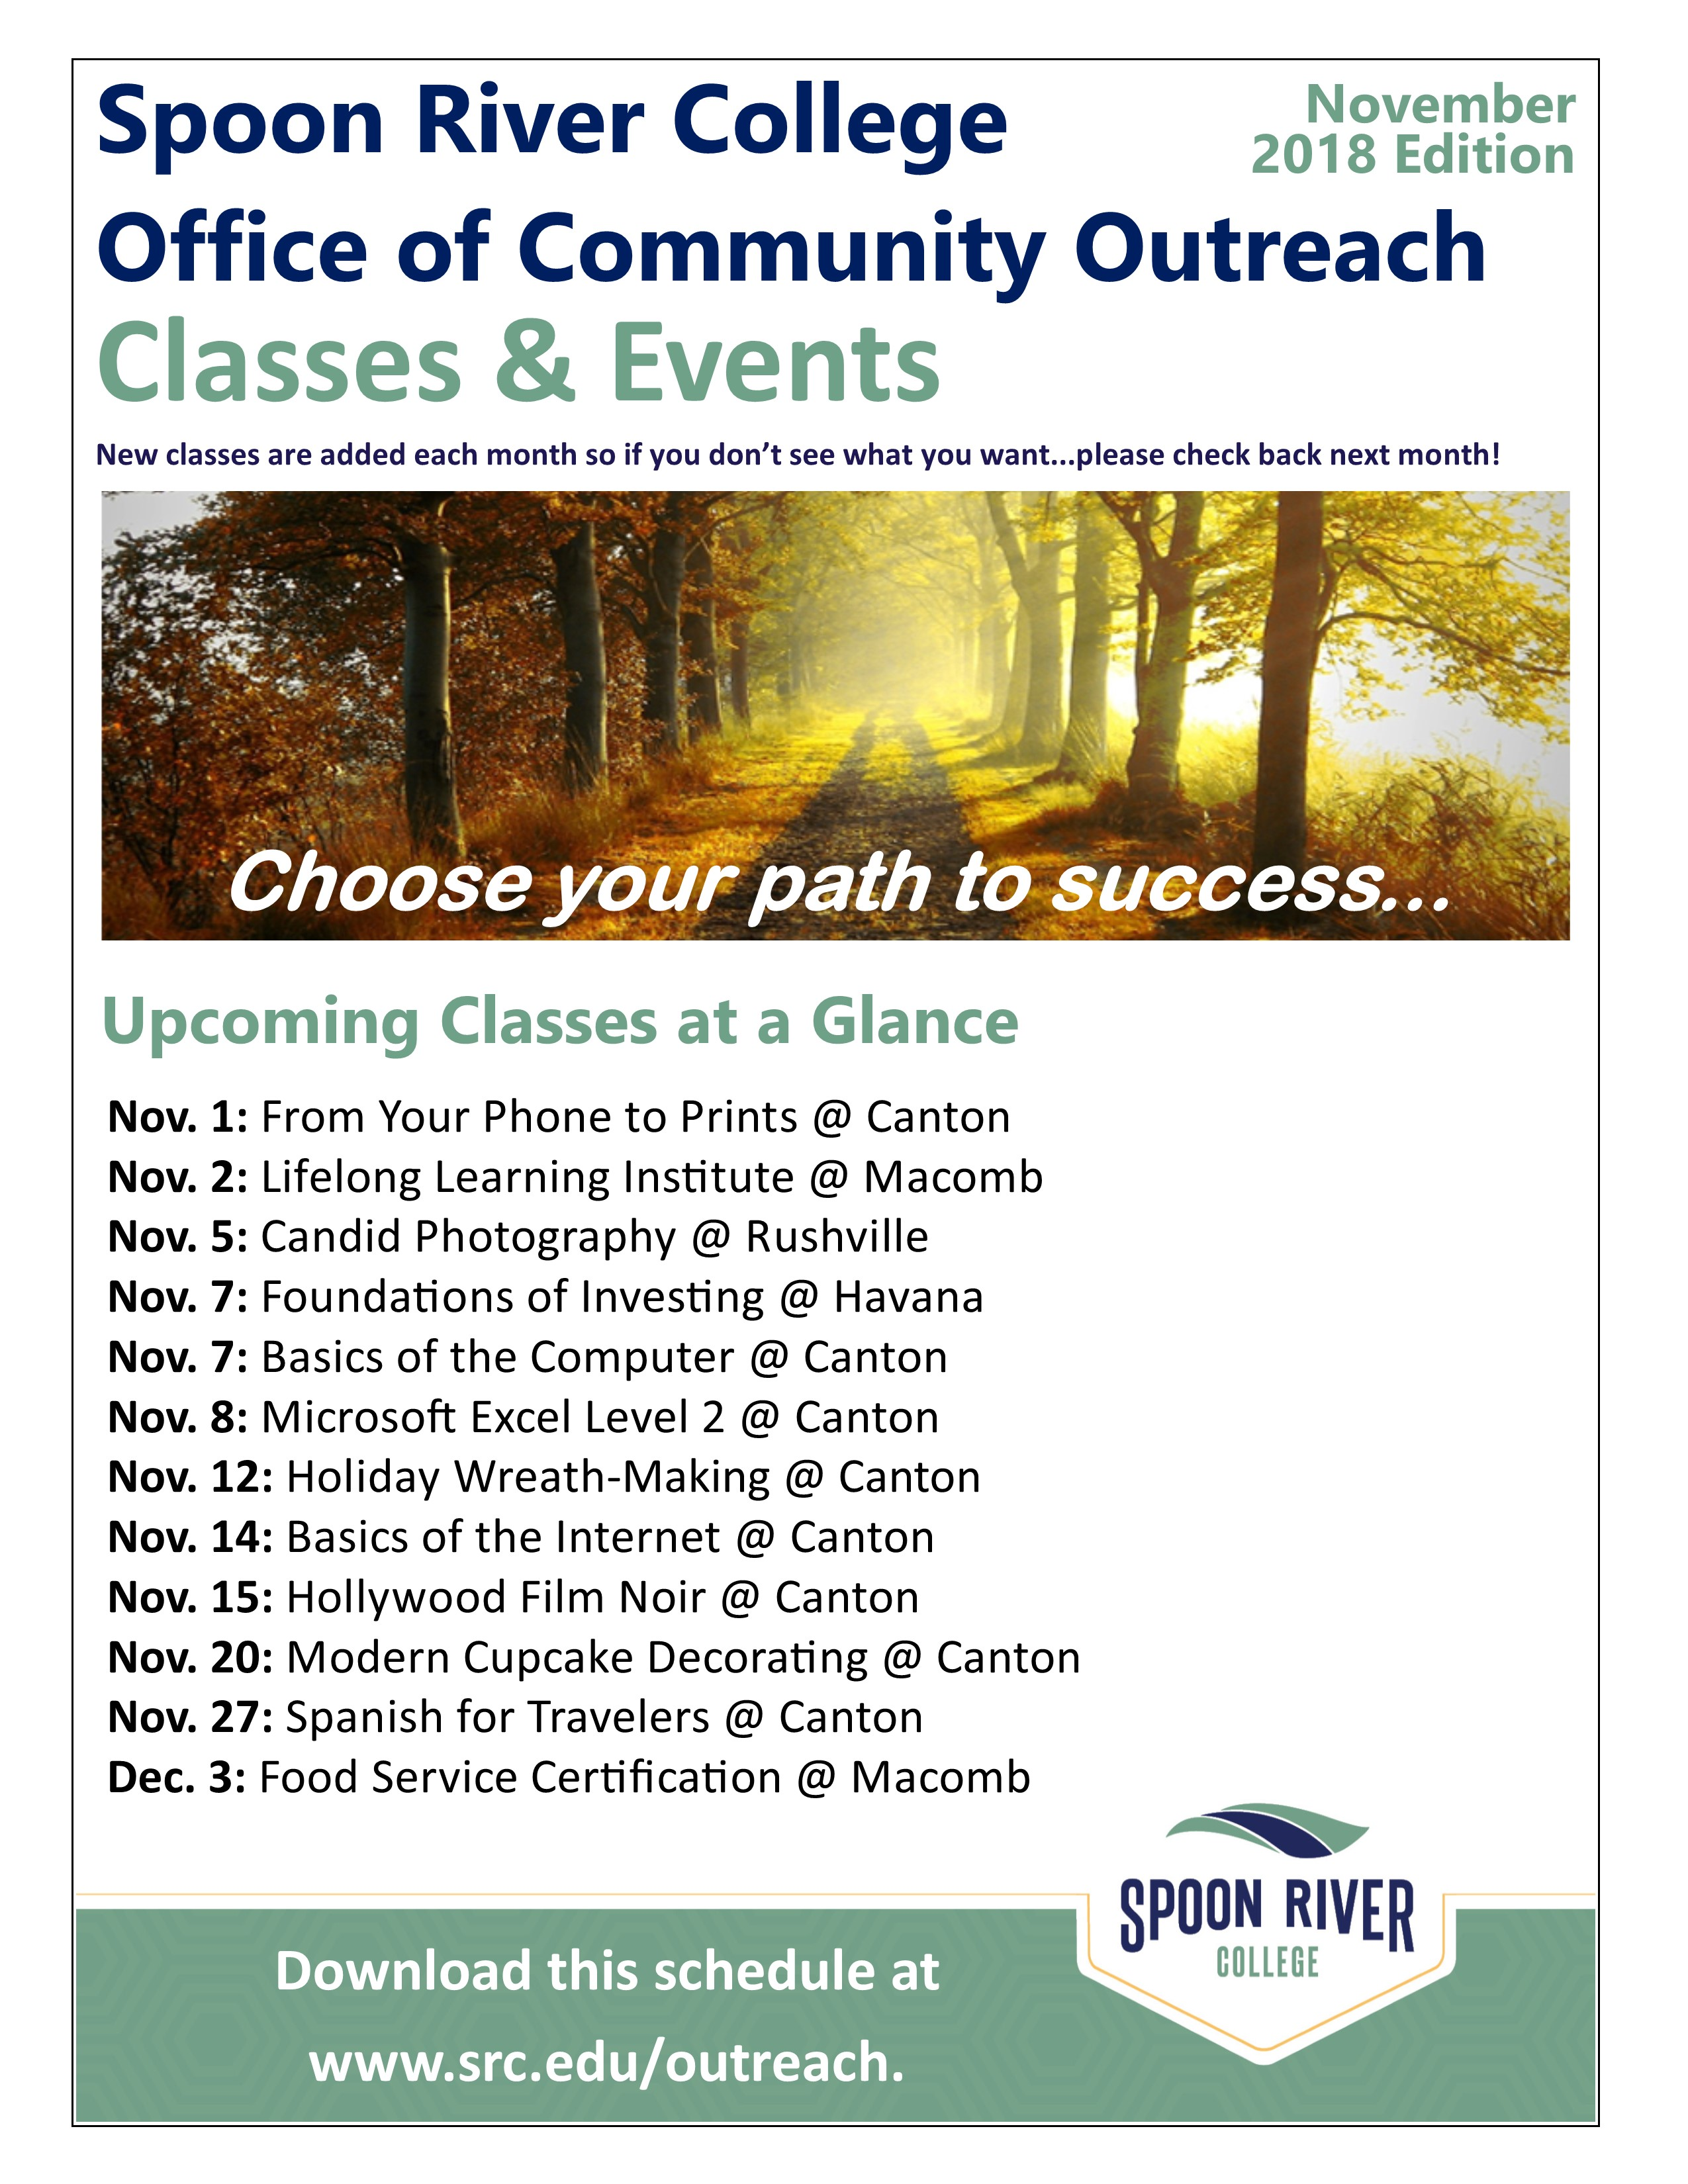 Community outreach schedule